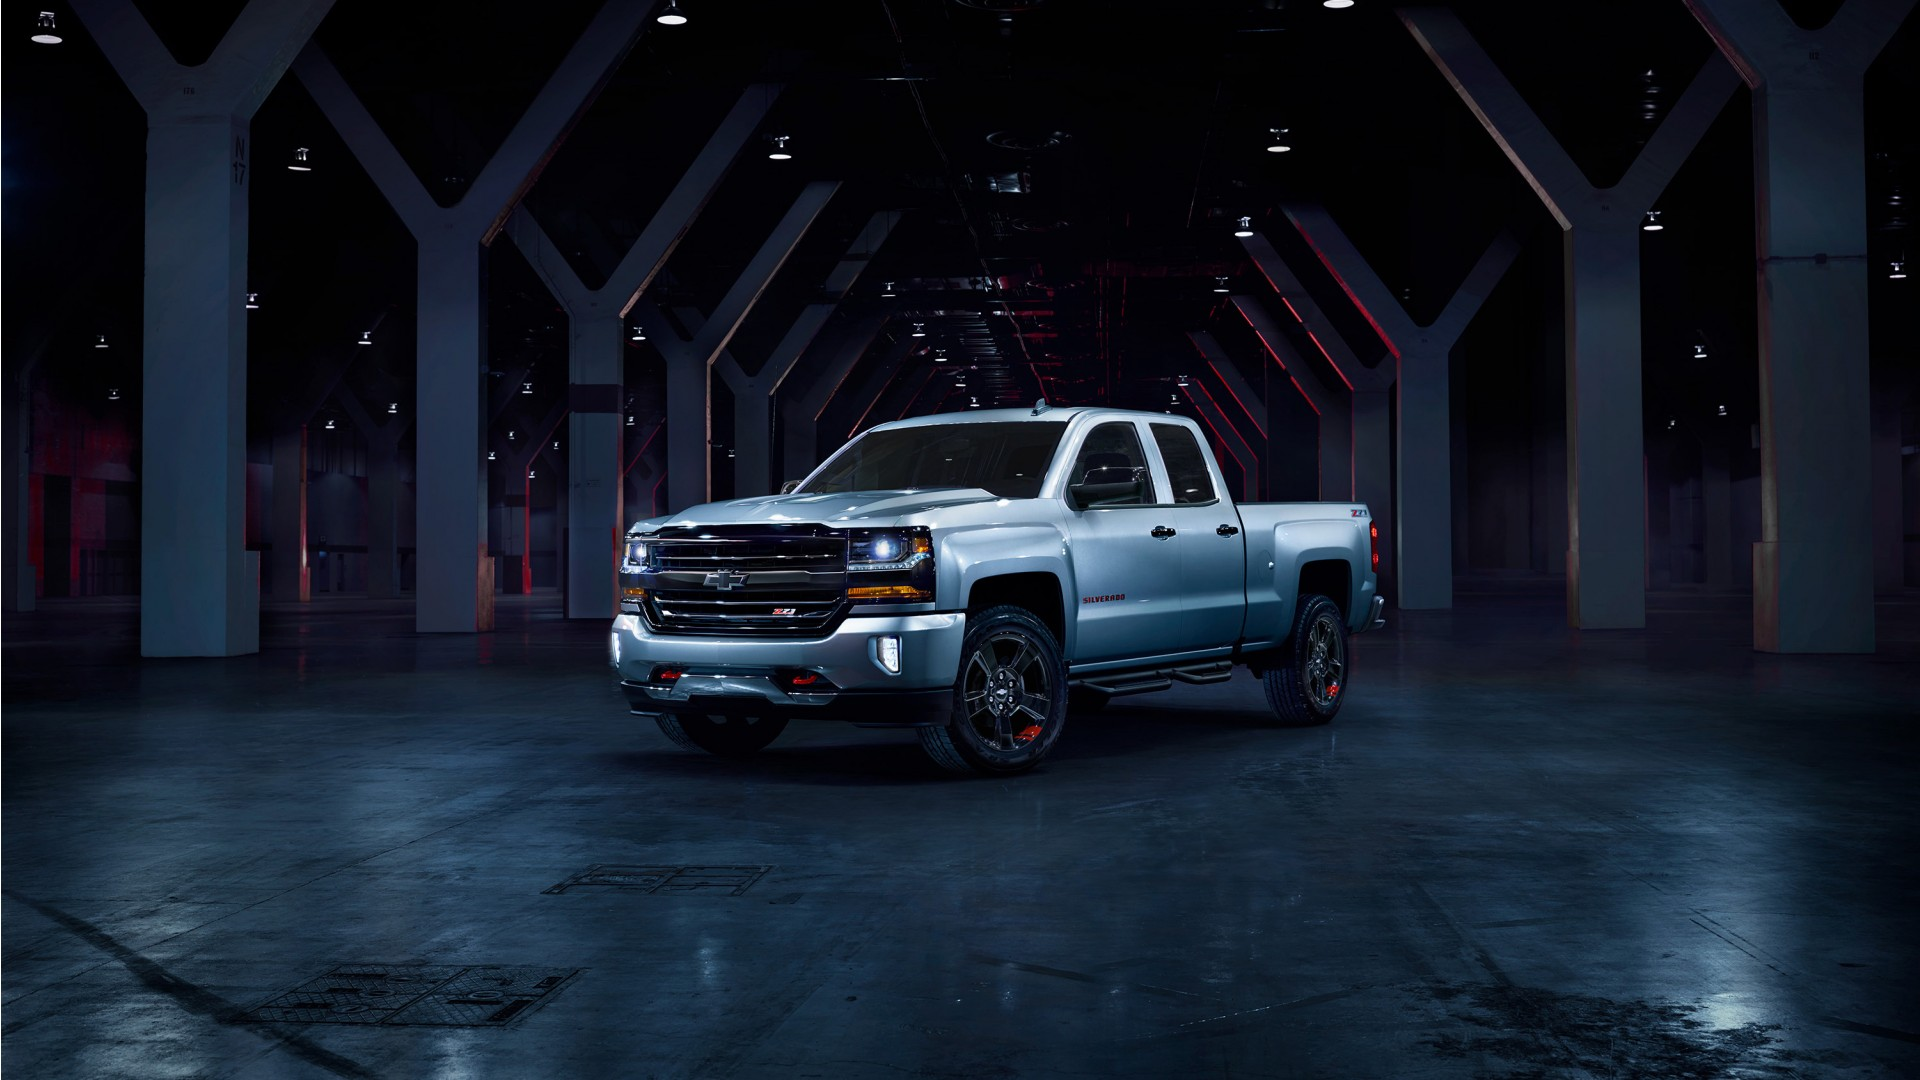 2017 Chevrolet Silverado Redline Edition Wallpaper | HD Car Wallpapers